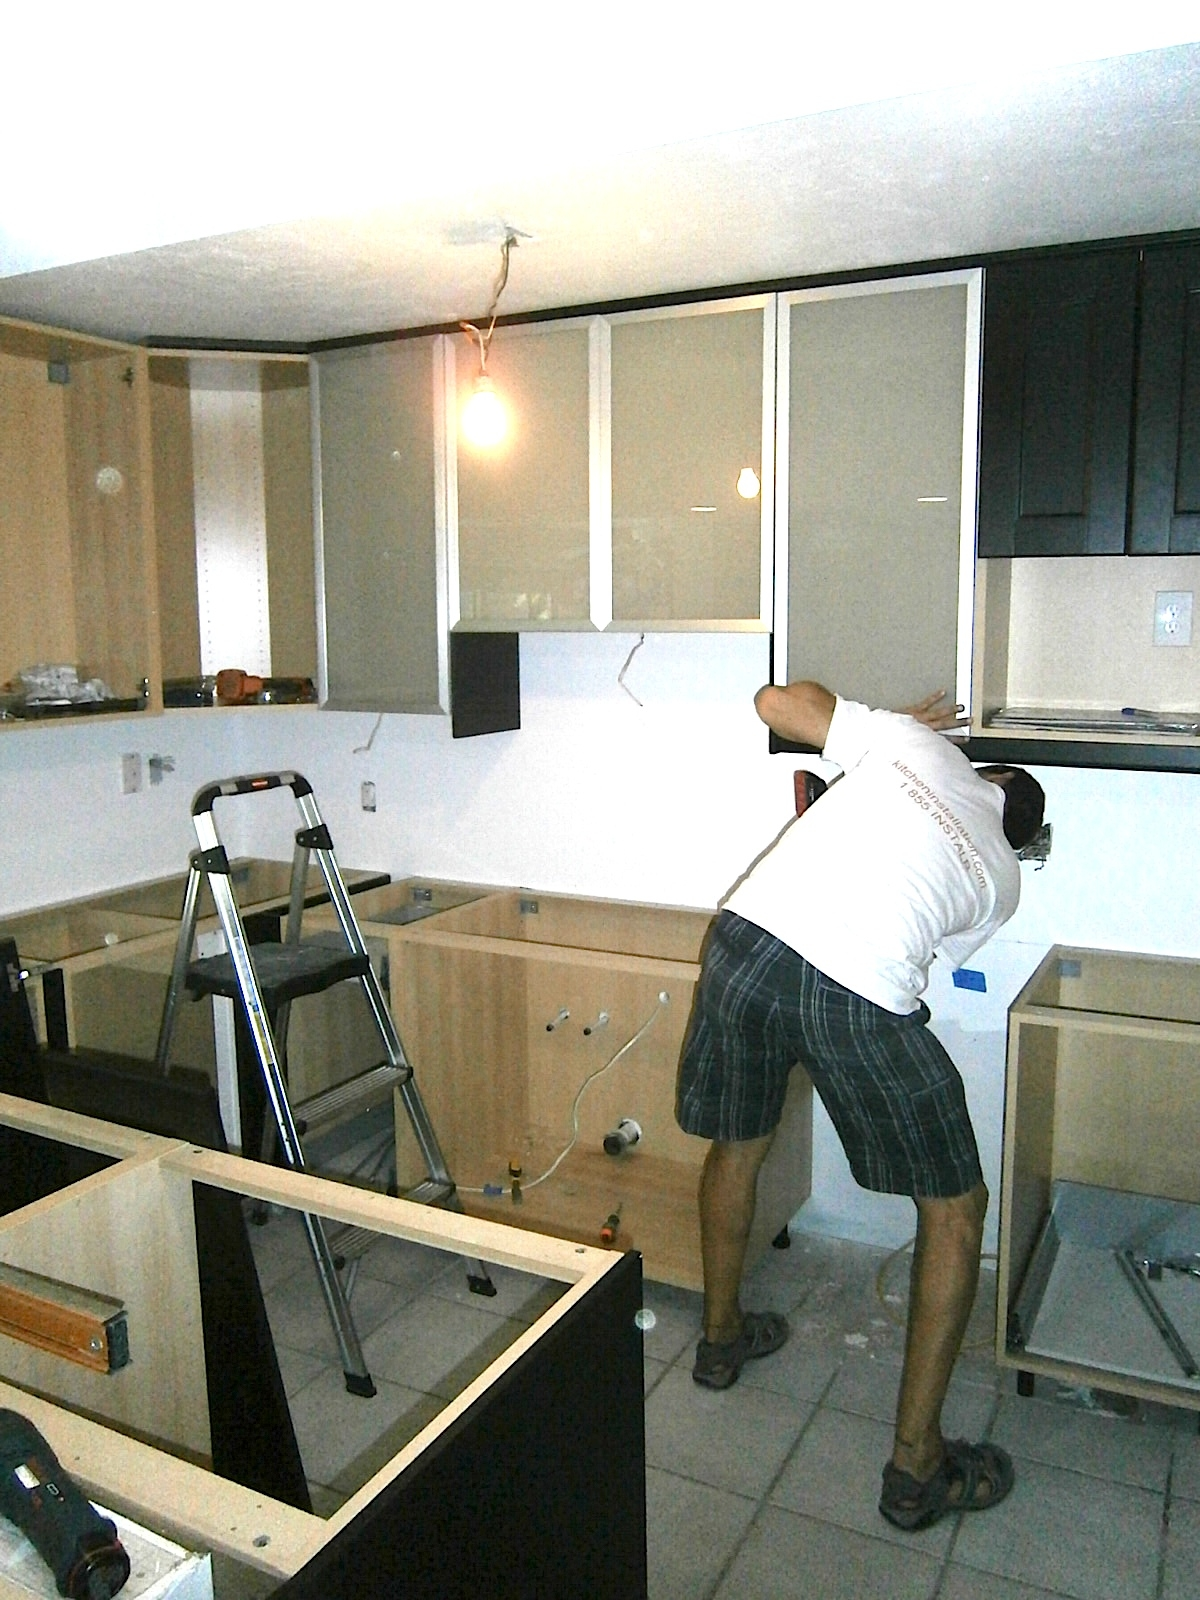 Kitchen craft llc ikea kitchen installation sarasota for Kitchen installation